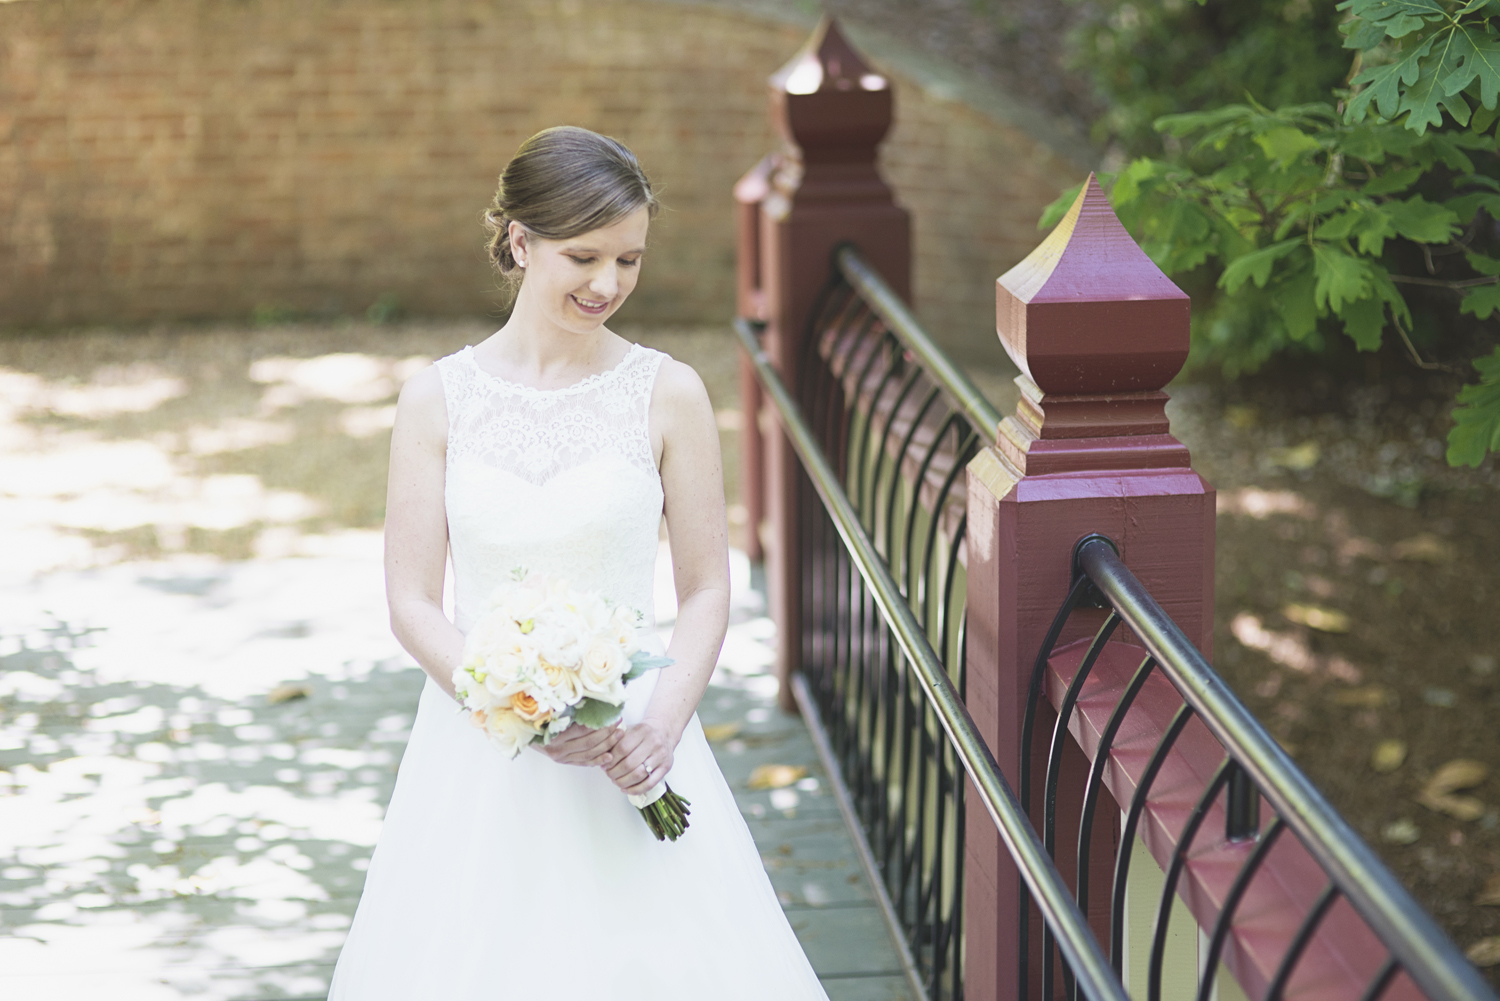 Crim Dell Bride at William and Mary Wedding | Bridal portrait